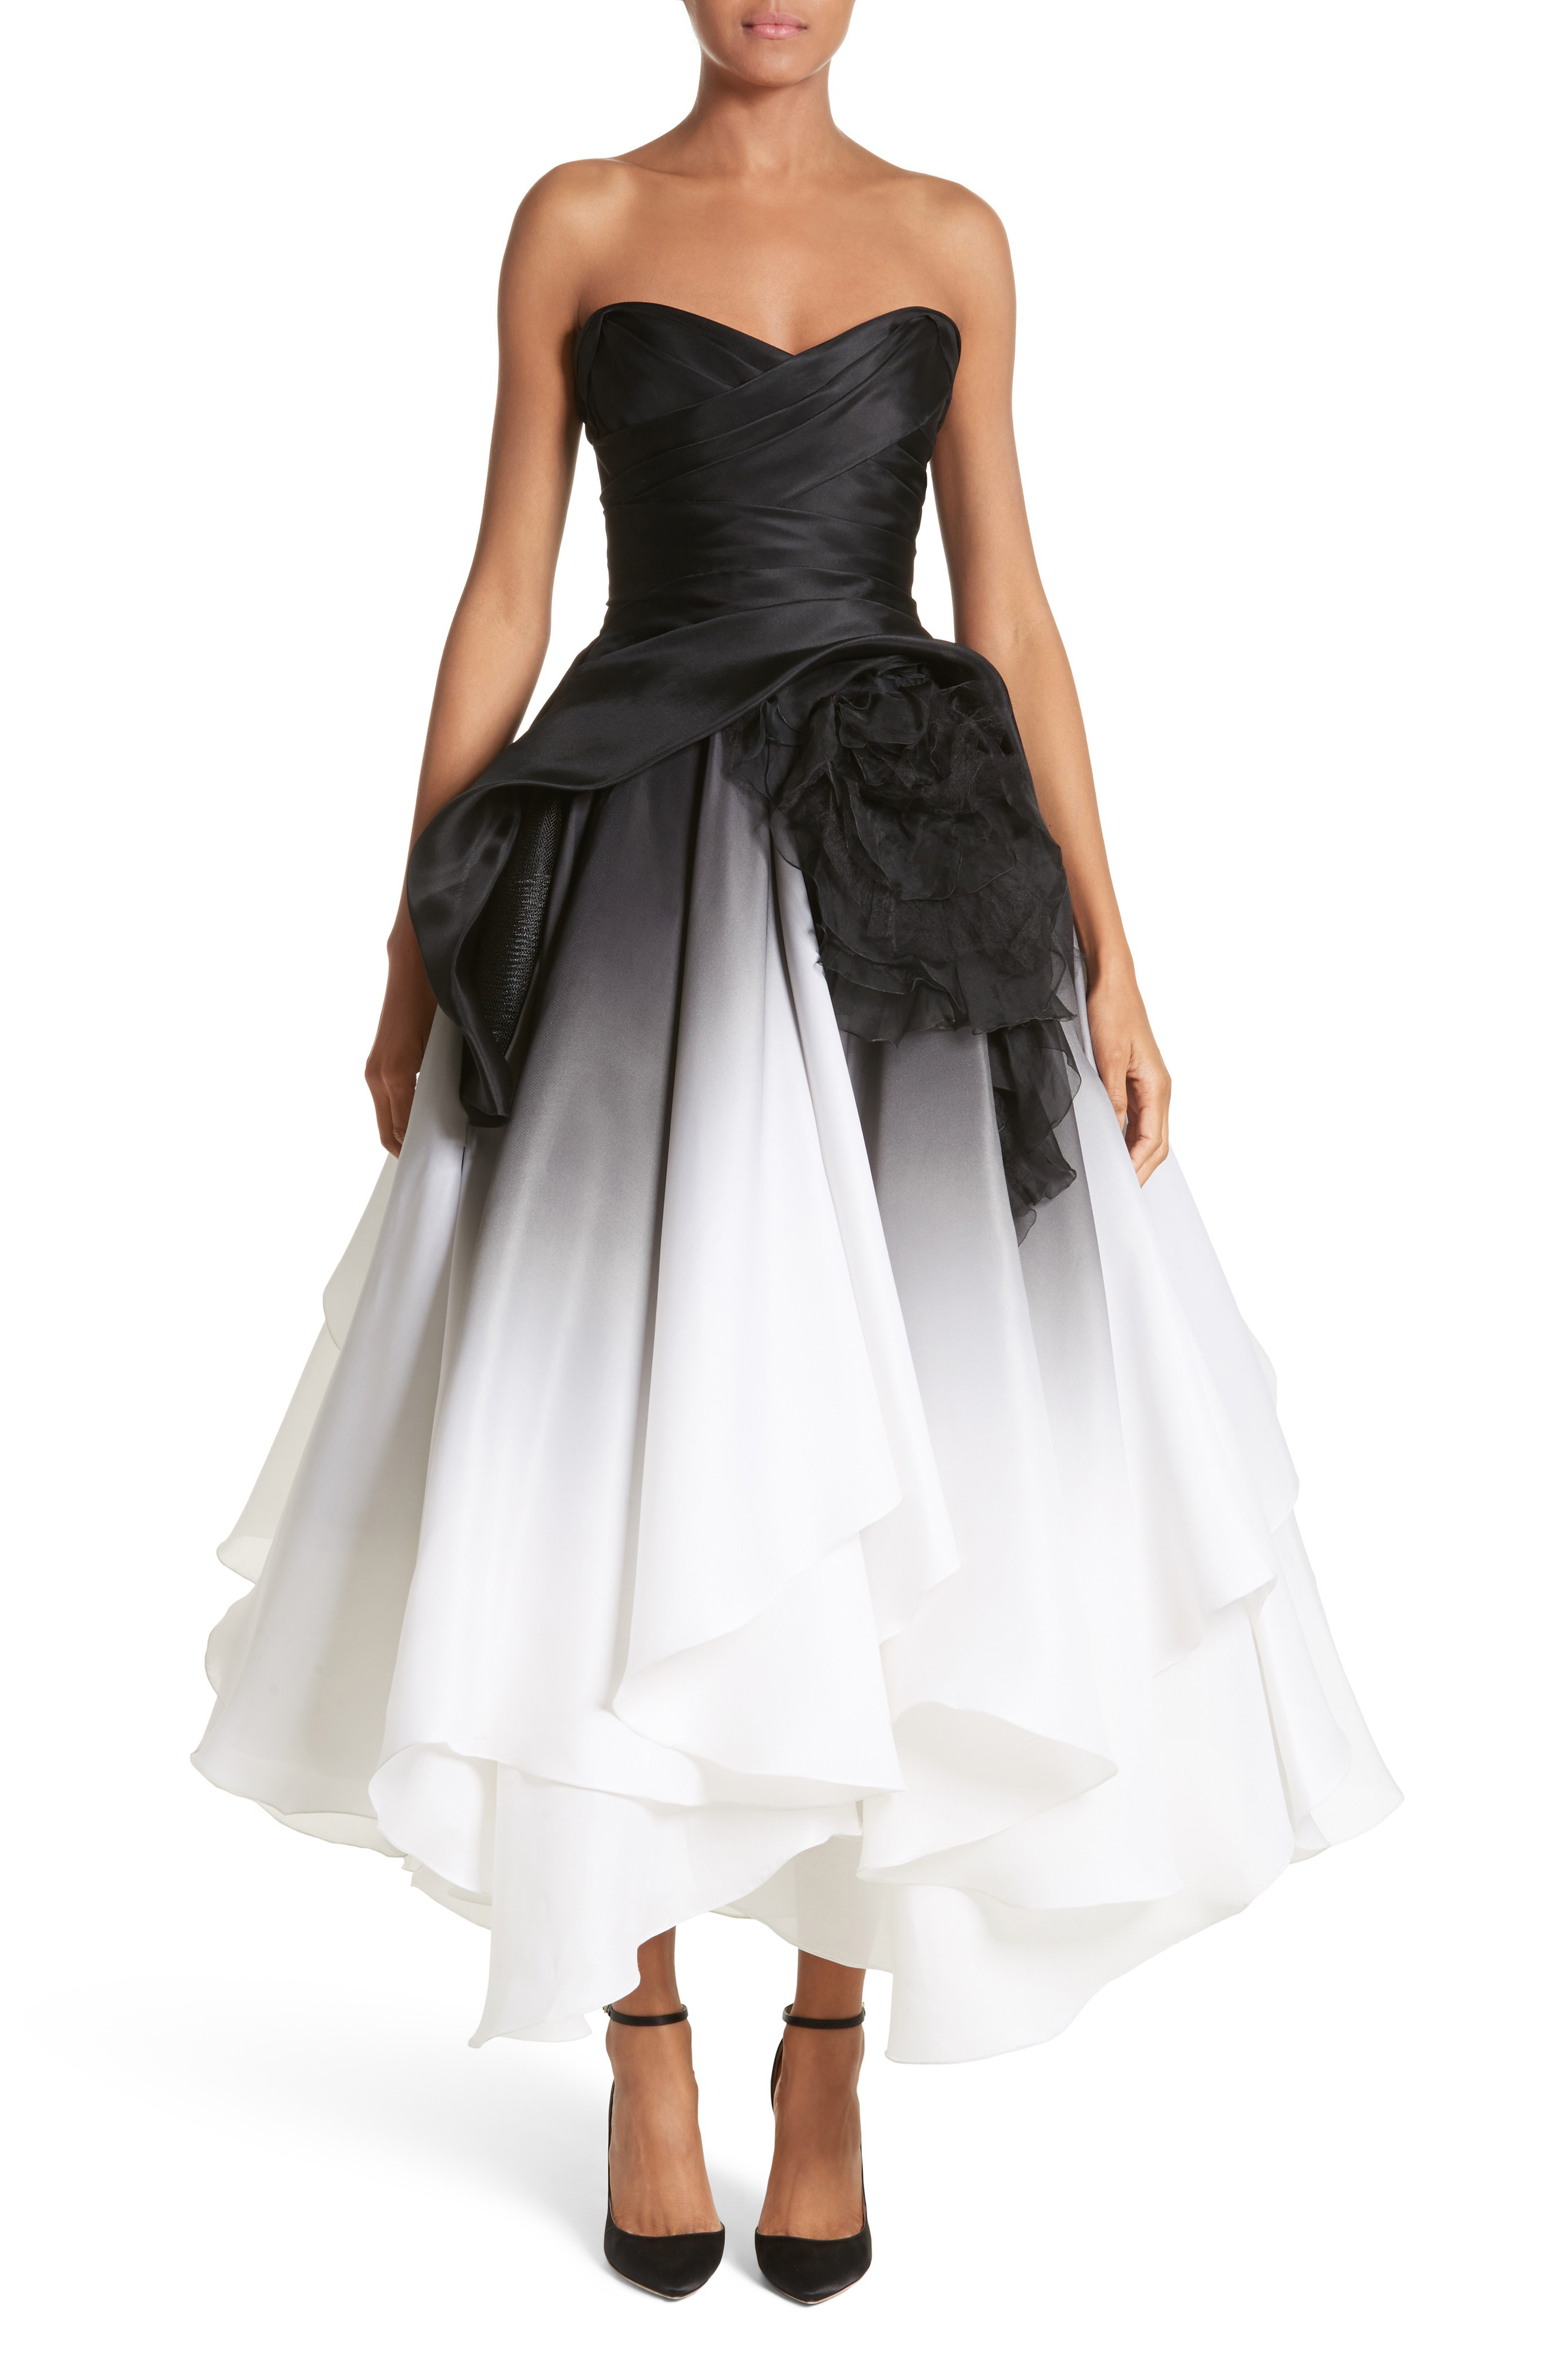 Marchesa Ombré Strapless Tea Length Black White Dress